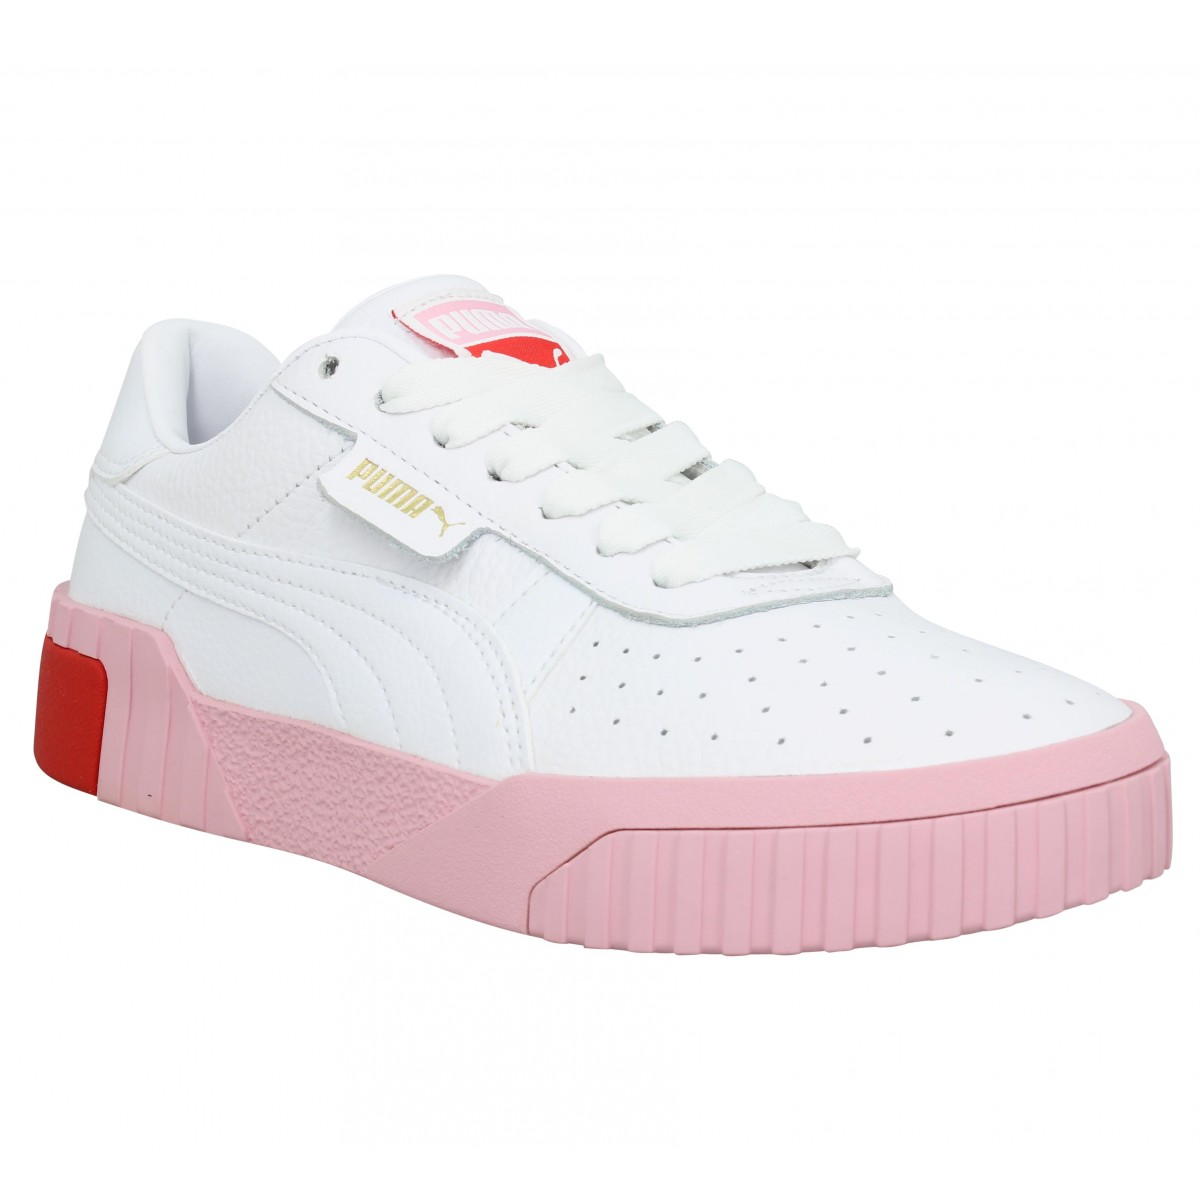 france puma platform sneakers basses femmes rose blanche